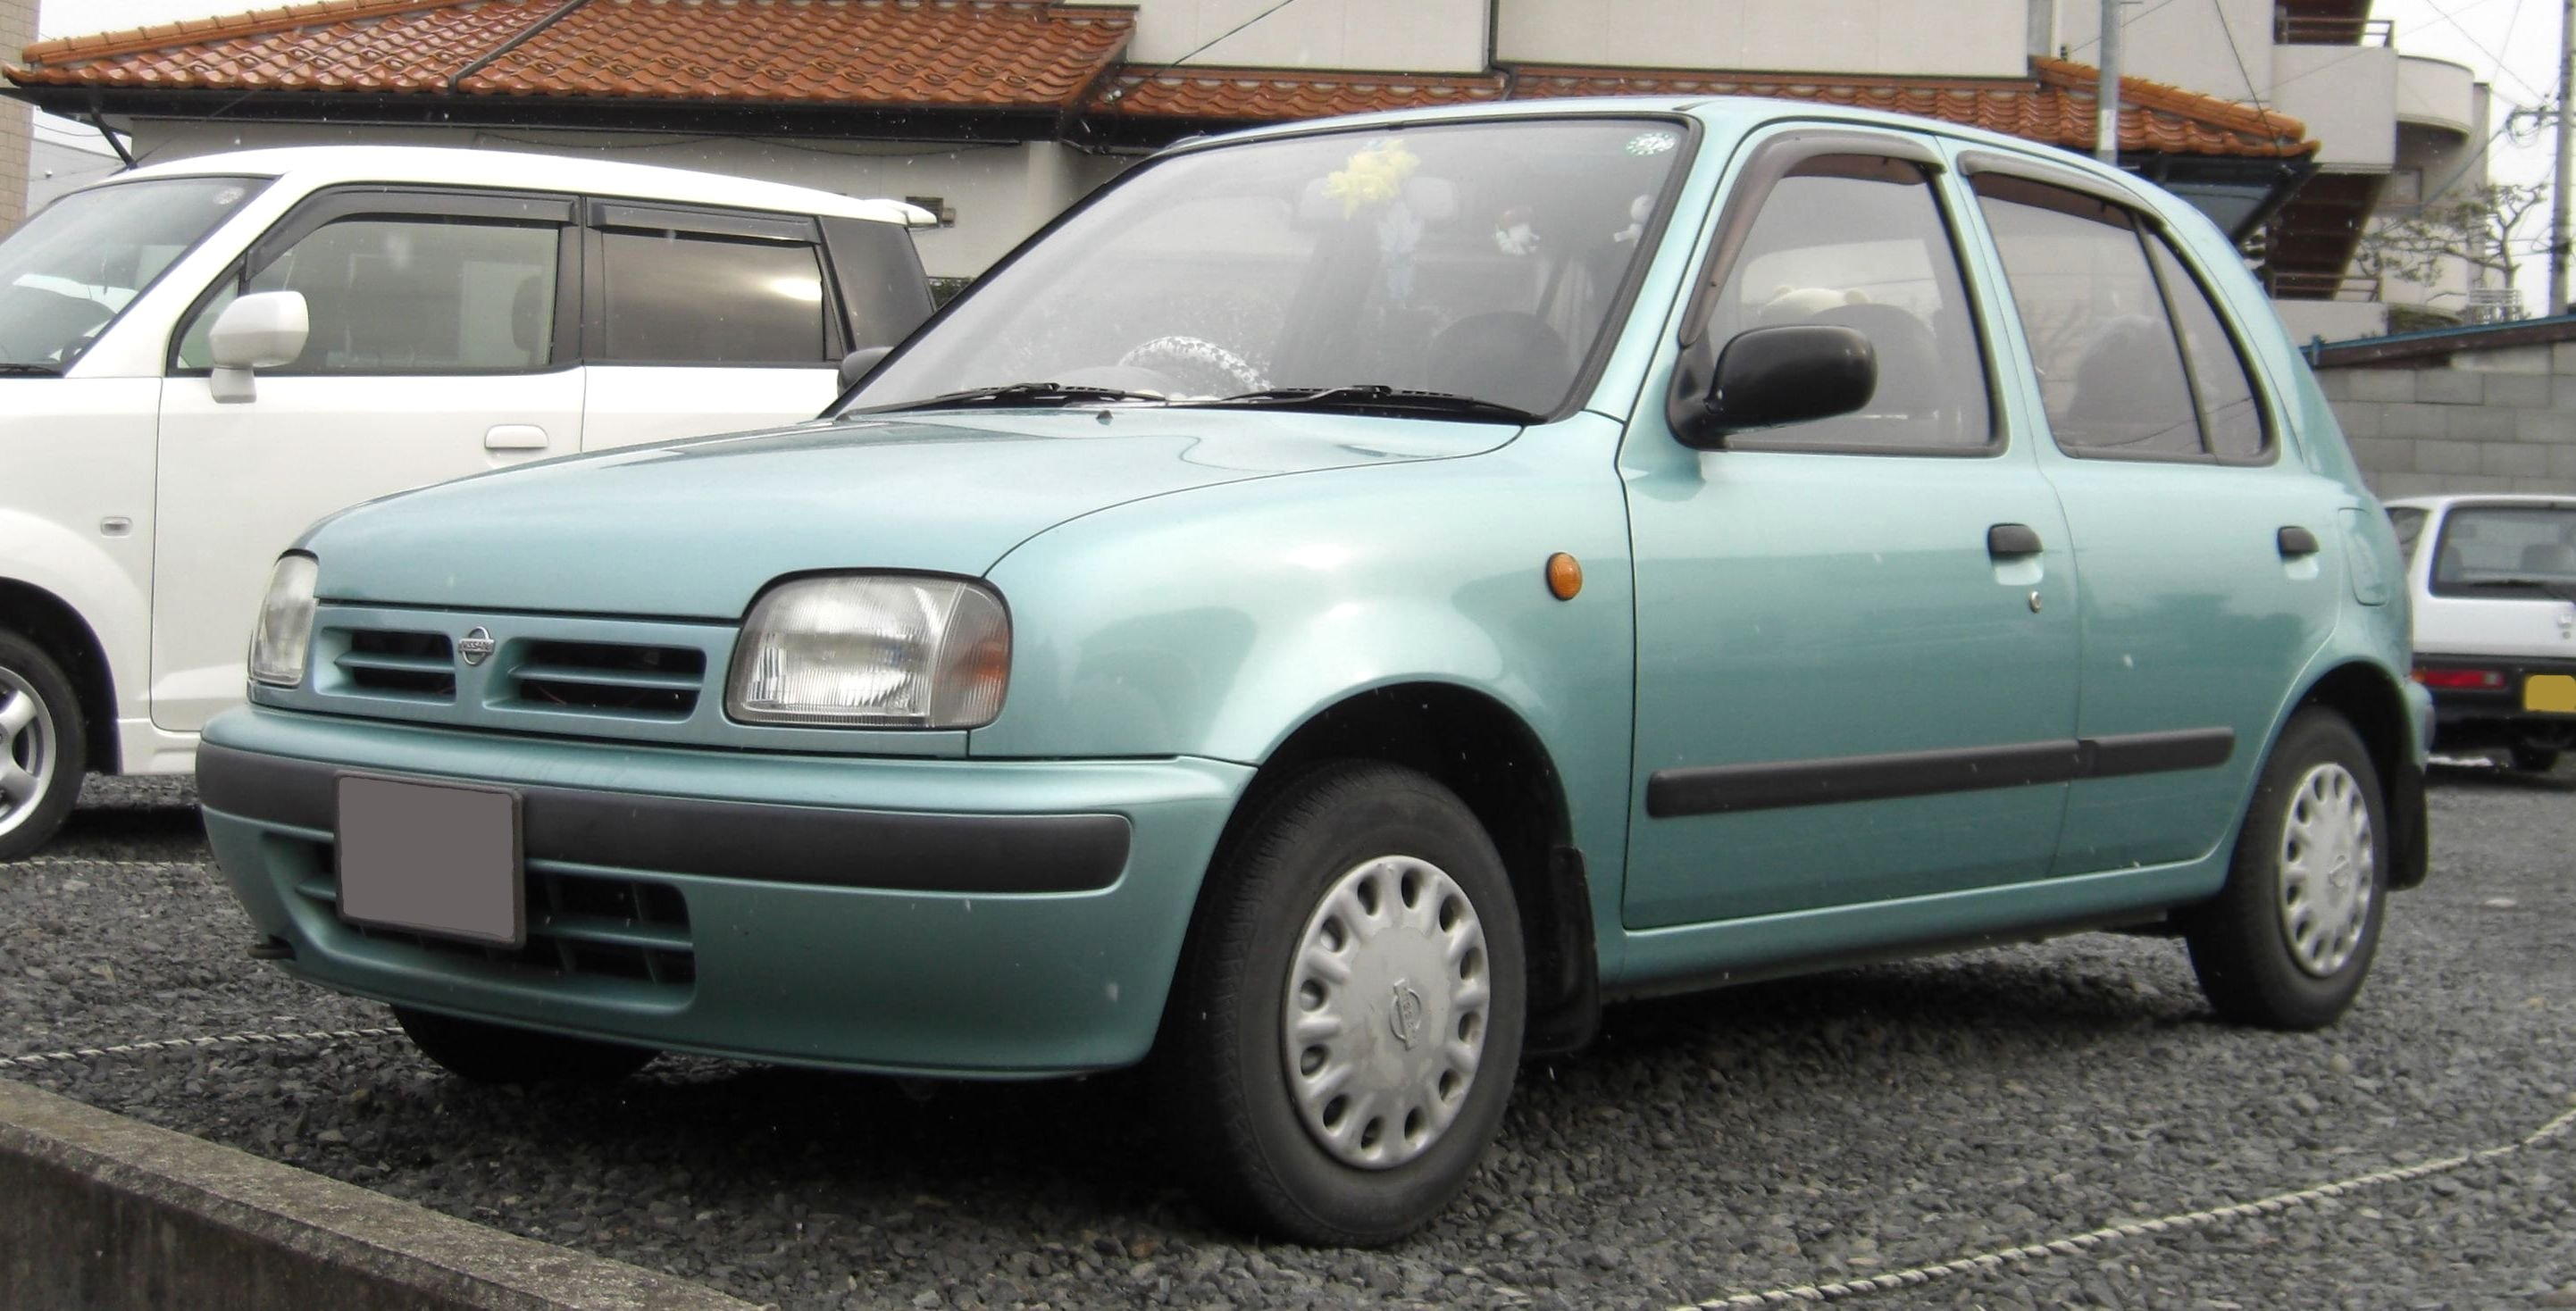 http://upload.wikimedia.org/wikipedia/commons/f/f8/1992-1995_NISSAN_March.jpg